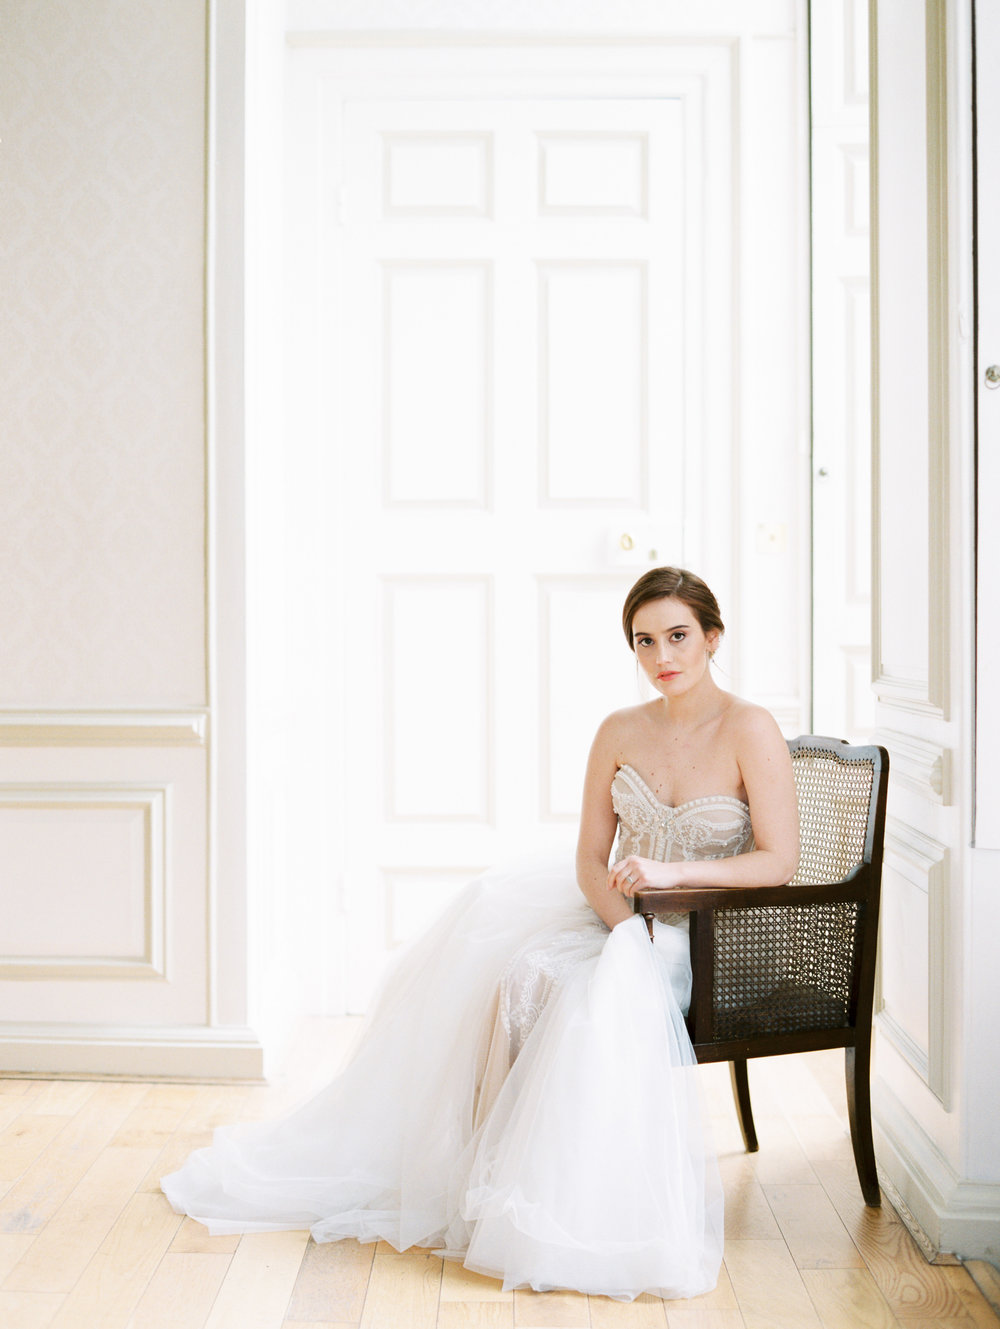 The Timeless Stylist-Elegant and Romantic Wedding Styling-Classic Bride Heirloom Chair